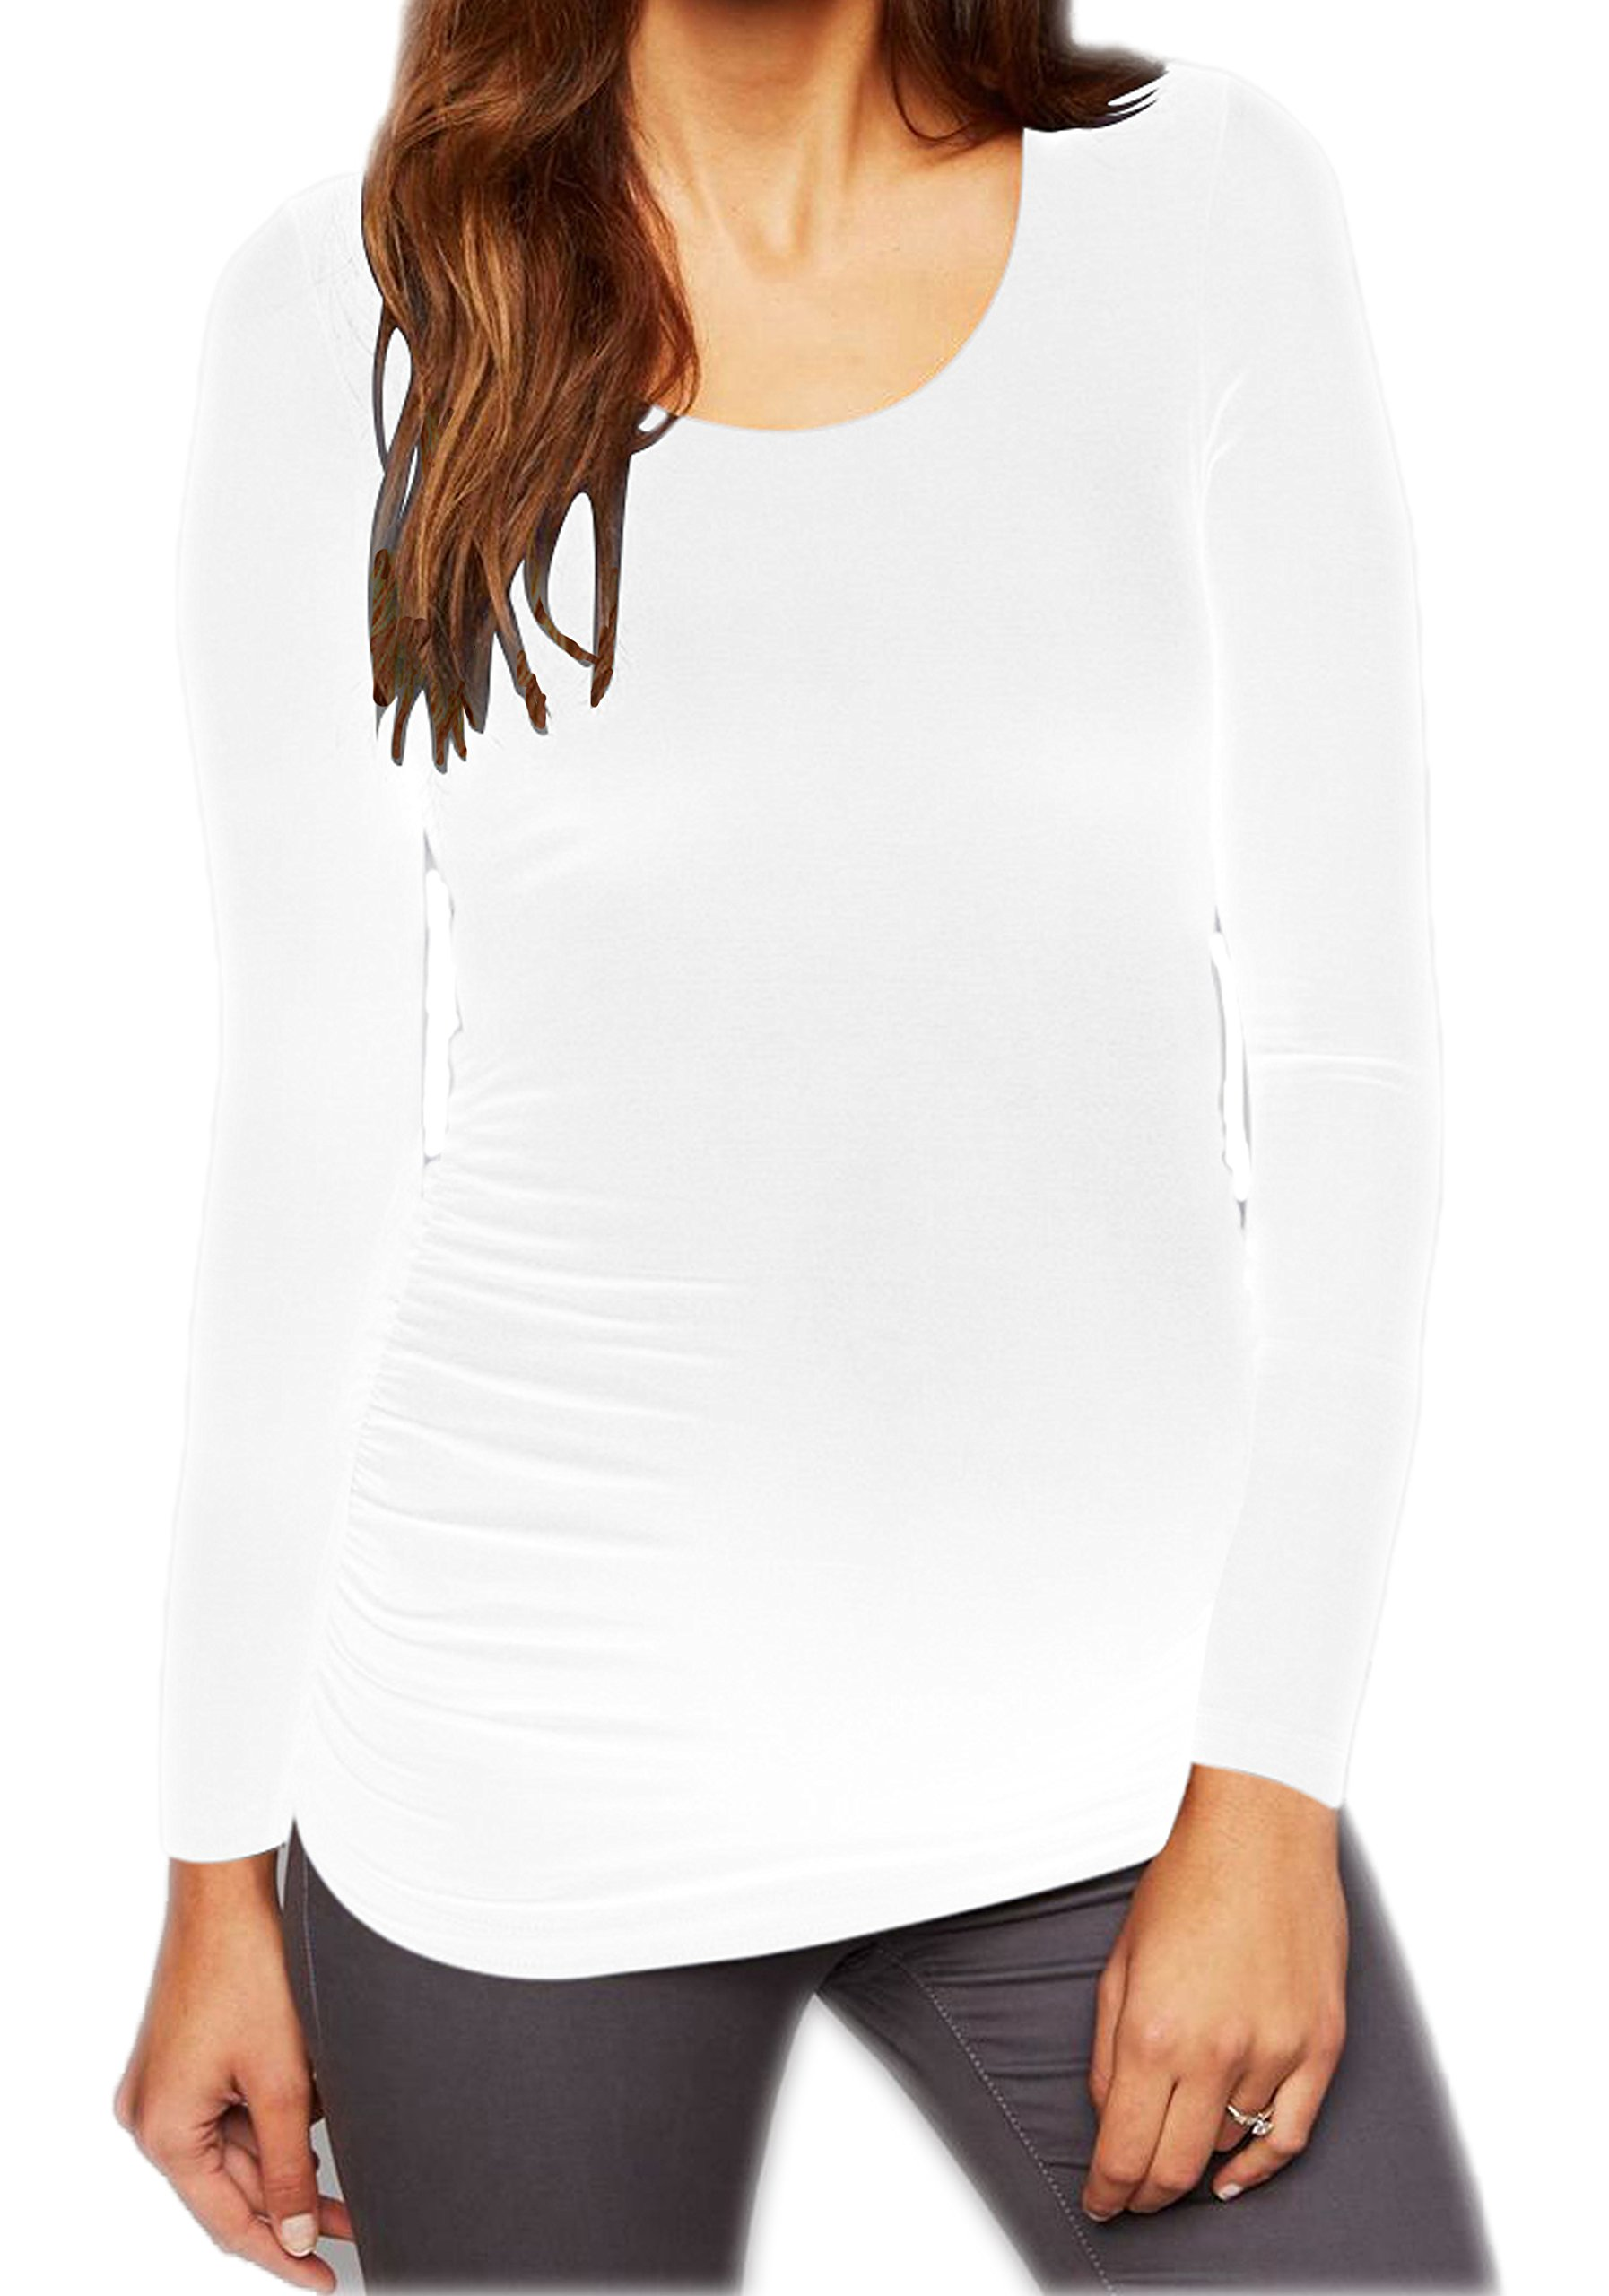 Long Sleeve Maternity Shirt Tunic Top Motherhood Flattering Scoop Round Neck Pregnancy/Nursing - Stretch Technology (Maternity (One Size Fits All), White)